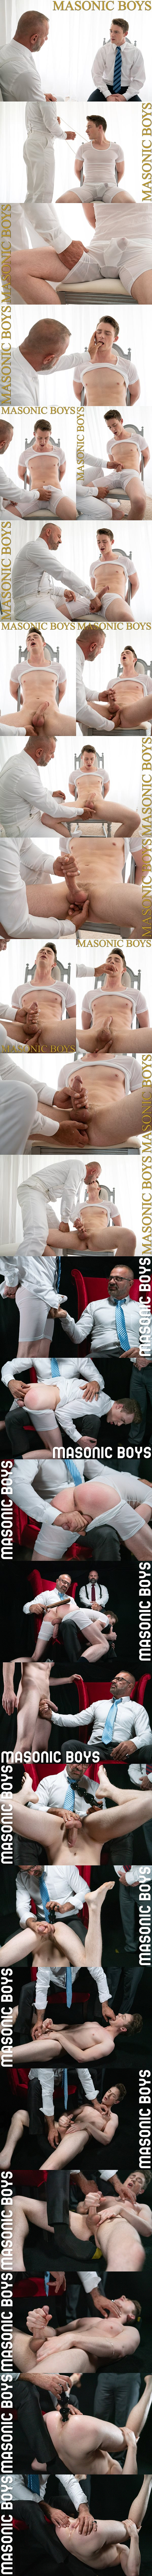 Macho daddy Master Kamp (aka Felix Kamp) fingers and dildo-fucks cute twink Apprentice Blue (aka Cole Blue) in The Interview and Disciplinary Action at Masonicboys 01